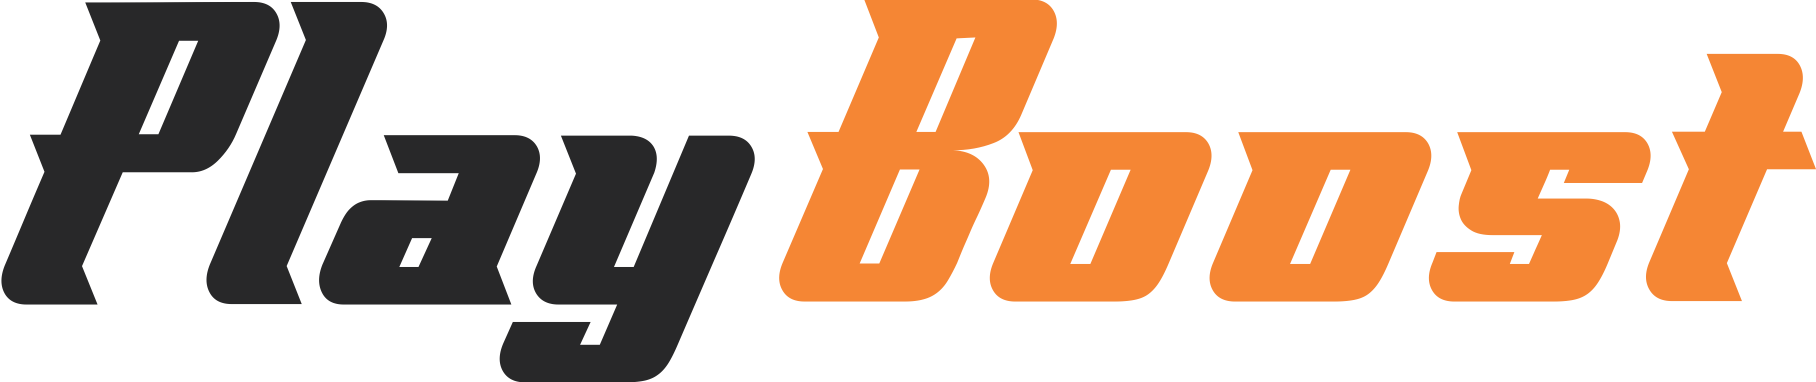 logo playboost